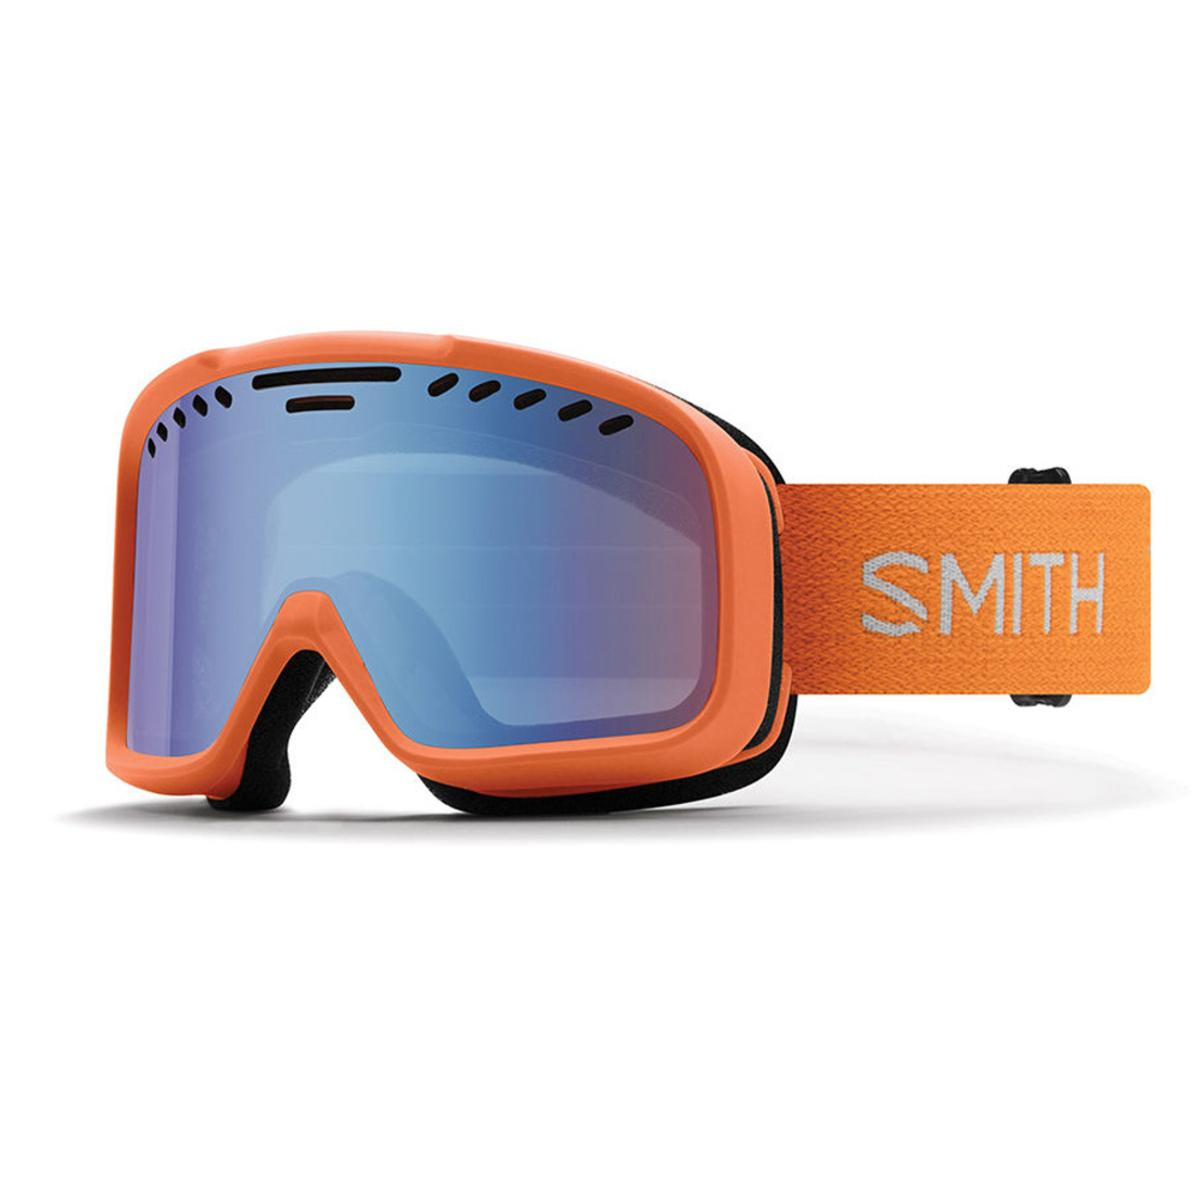 ef37eb191f Smith Optics Project Snow Goggles - Halo Frame - The Warming Store